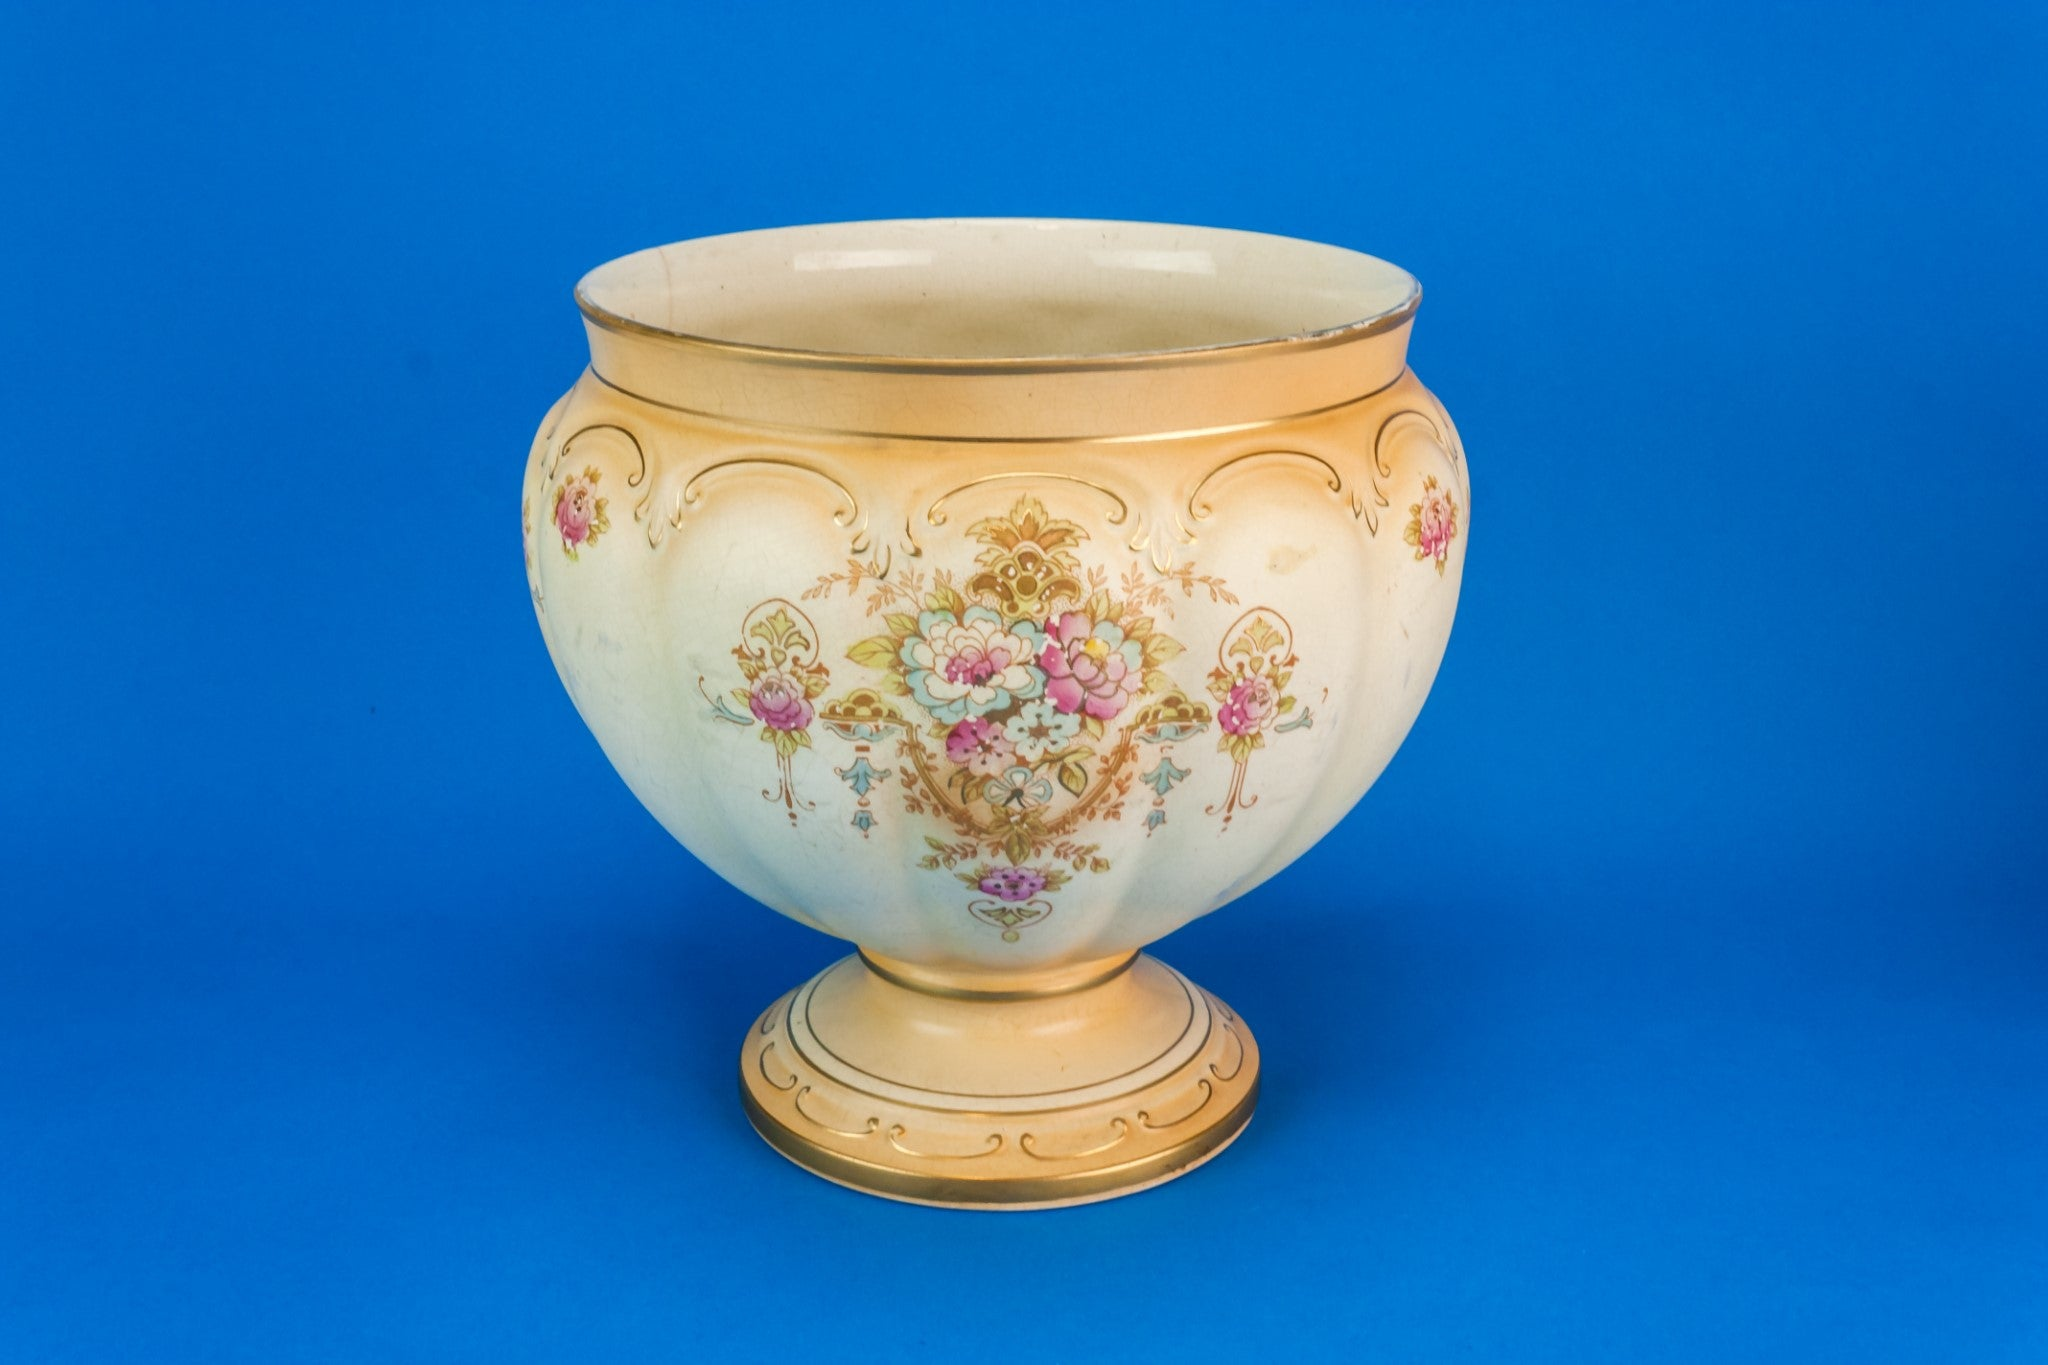 Edwardian pottery planter